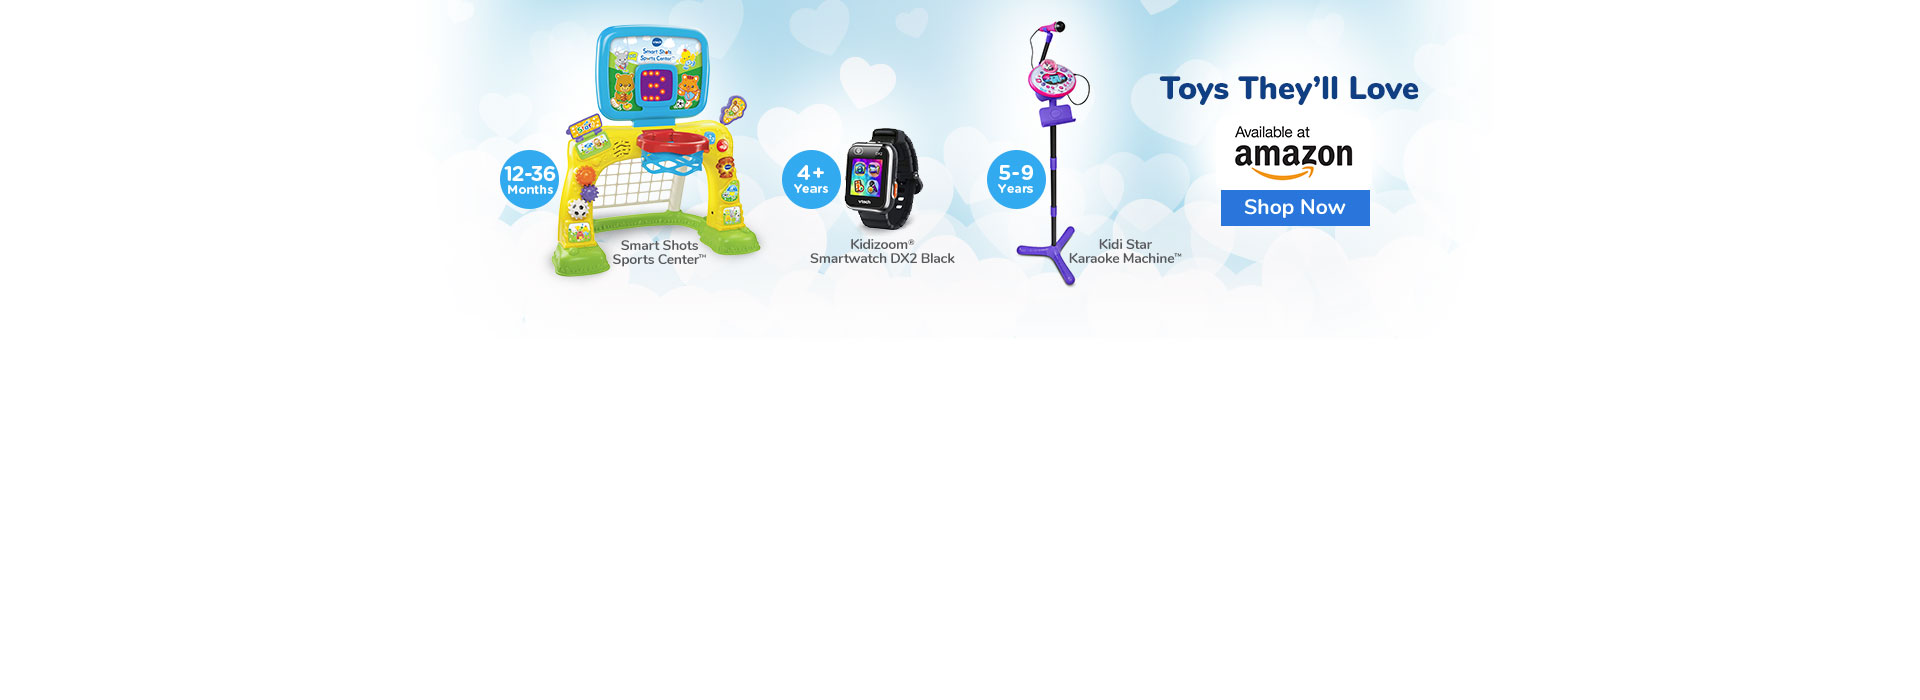 Shop Amazon For Great Deals on VTech Toys